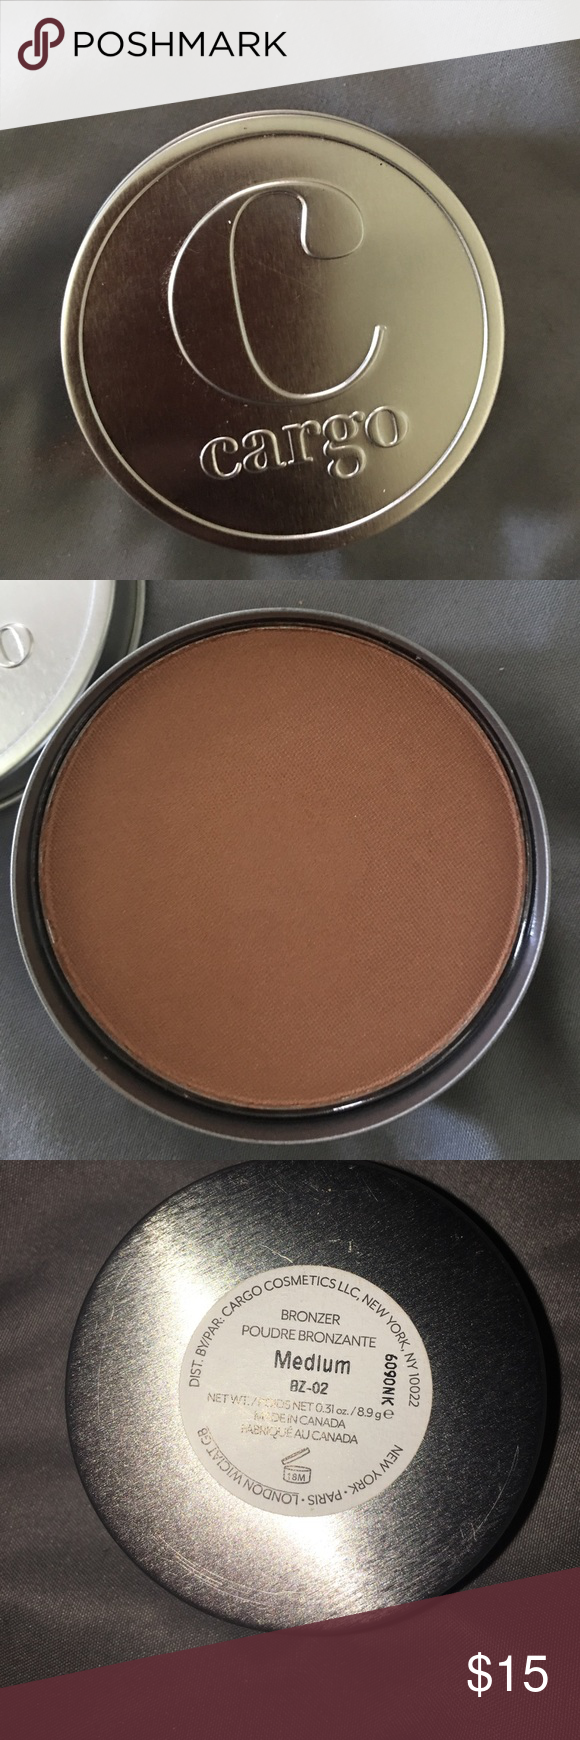 Shimmery cargo bronzer Shimmery cargo bronzer only searched im more of a matte bronzer so didn't use only swatched cargo Makeup Bronzer